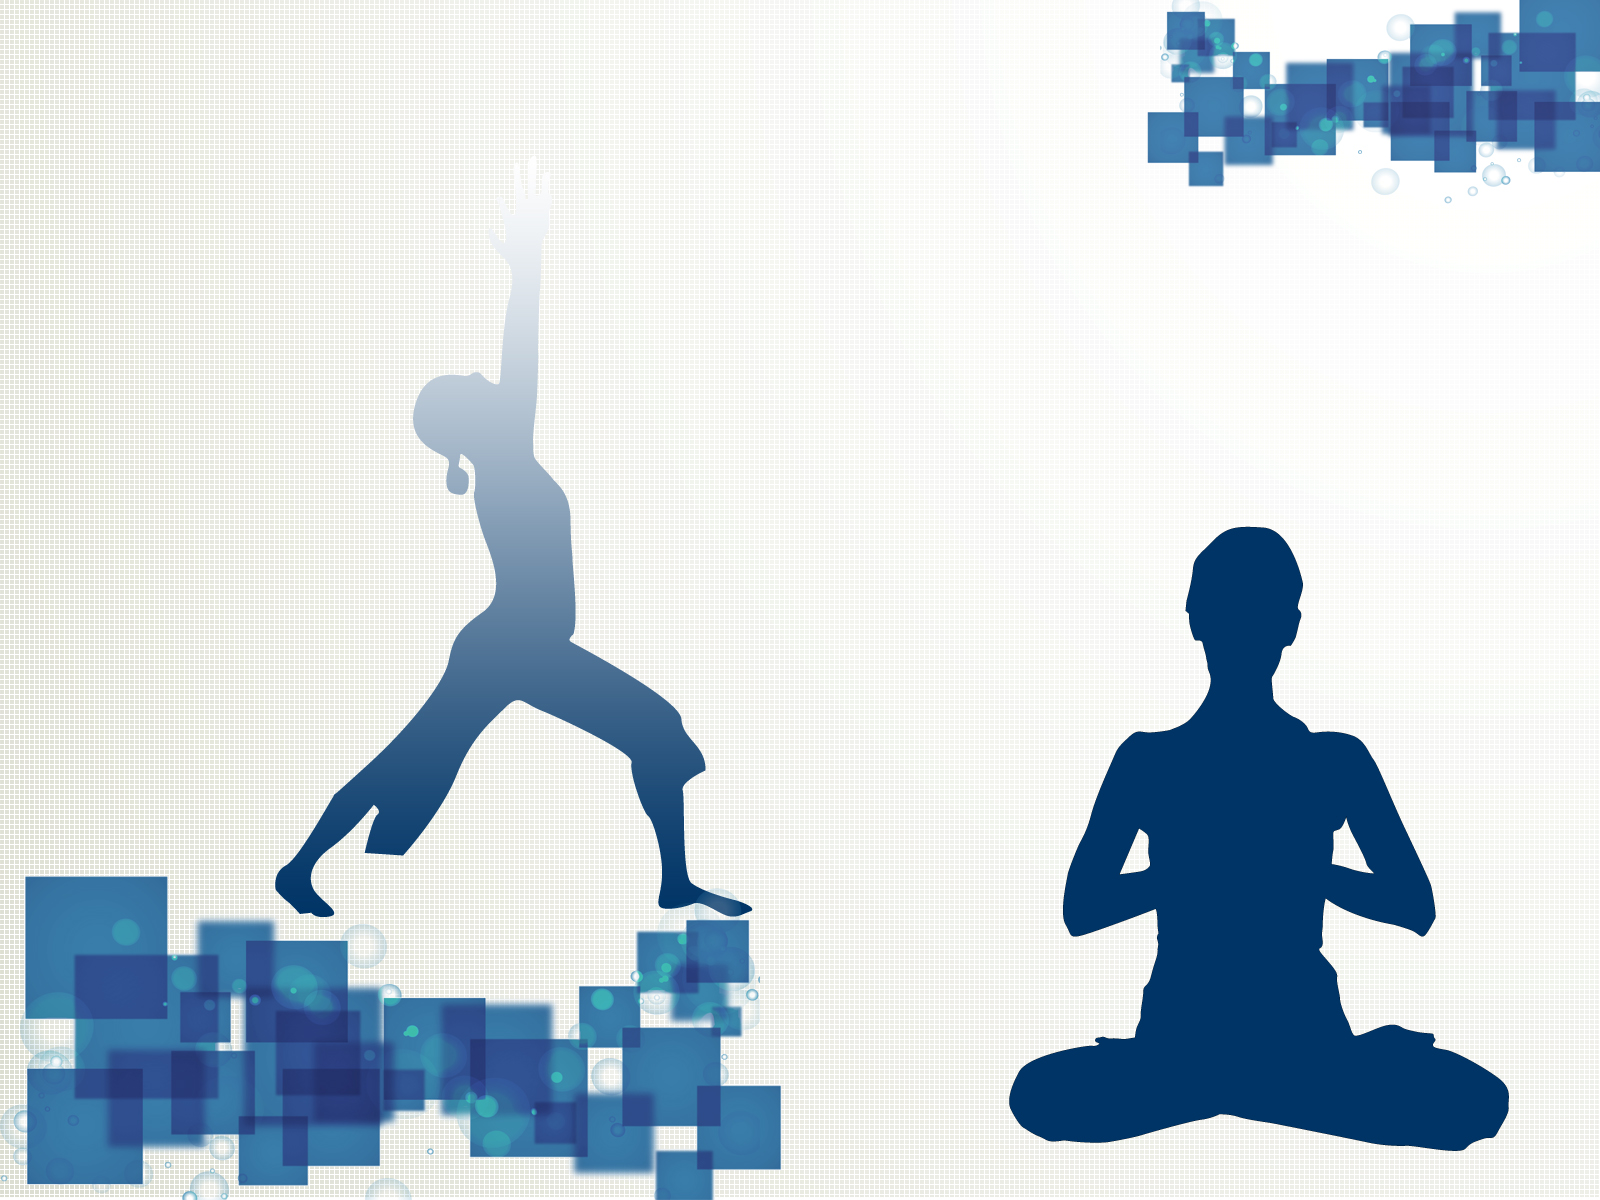 yoga sport template ppt backgrounds - blue, sports templates - ppt, Presentation templates